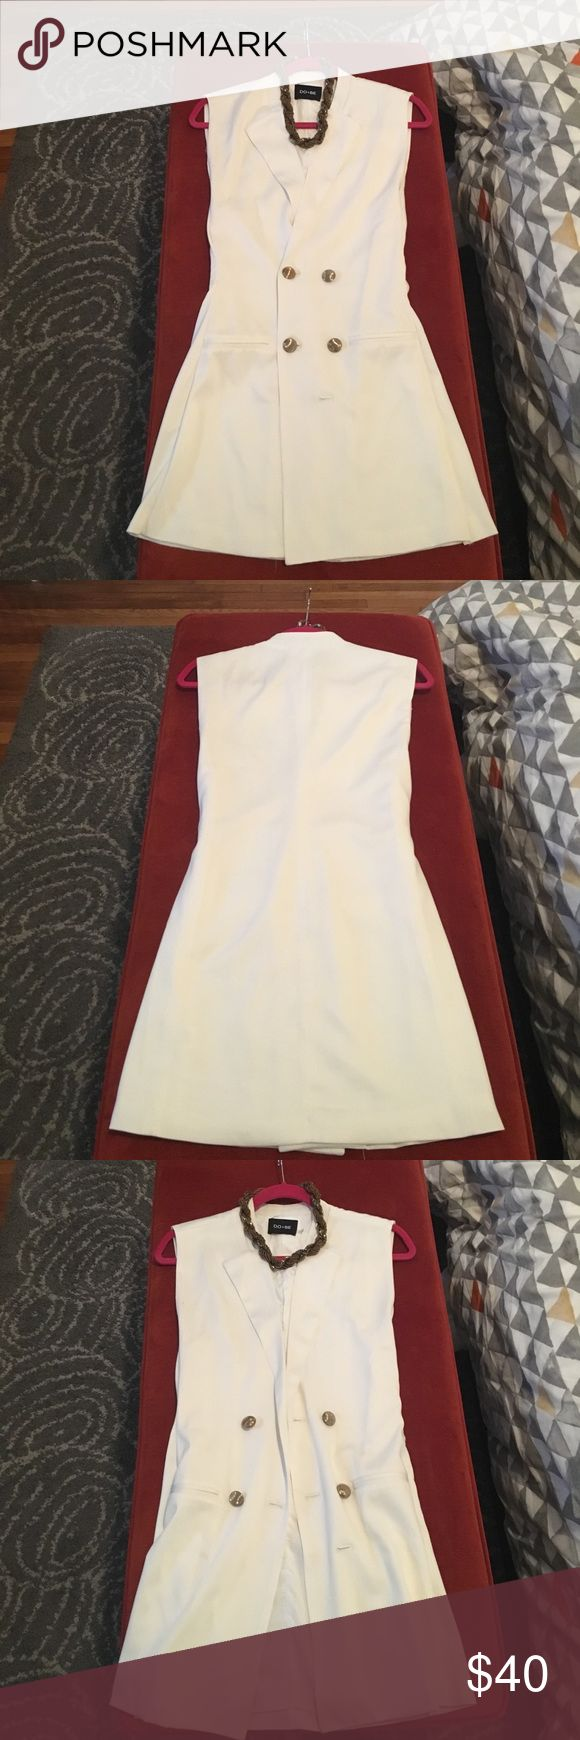 🎉 White tuxedo dress!! Free necklace!! White tuxedo dress, double breasted. Can be worn as a dress or open as a vest. Great from day tonight. Gold buttons. Comes with the free necklace in pictures. #bridalshower #allwhiteparty #bride2be #mywhitebdayparty #sundayfunday #slay DO +BE Dresses Mini